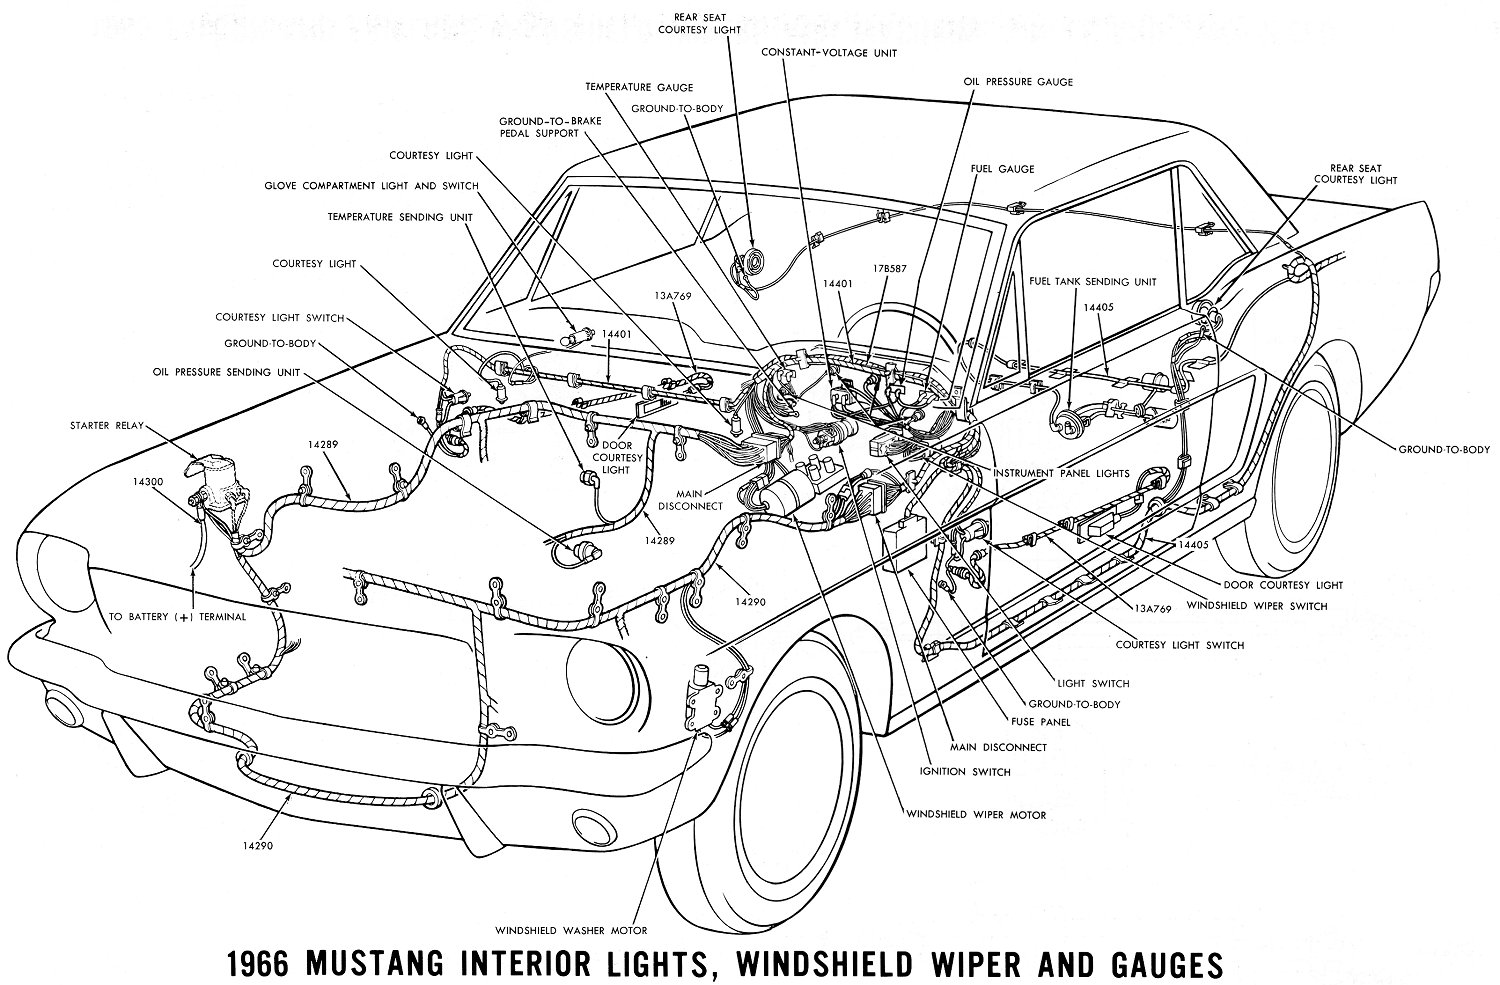 1990 mustang ignition switch wiring diagram